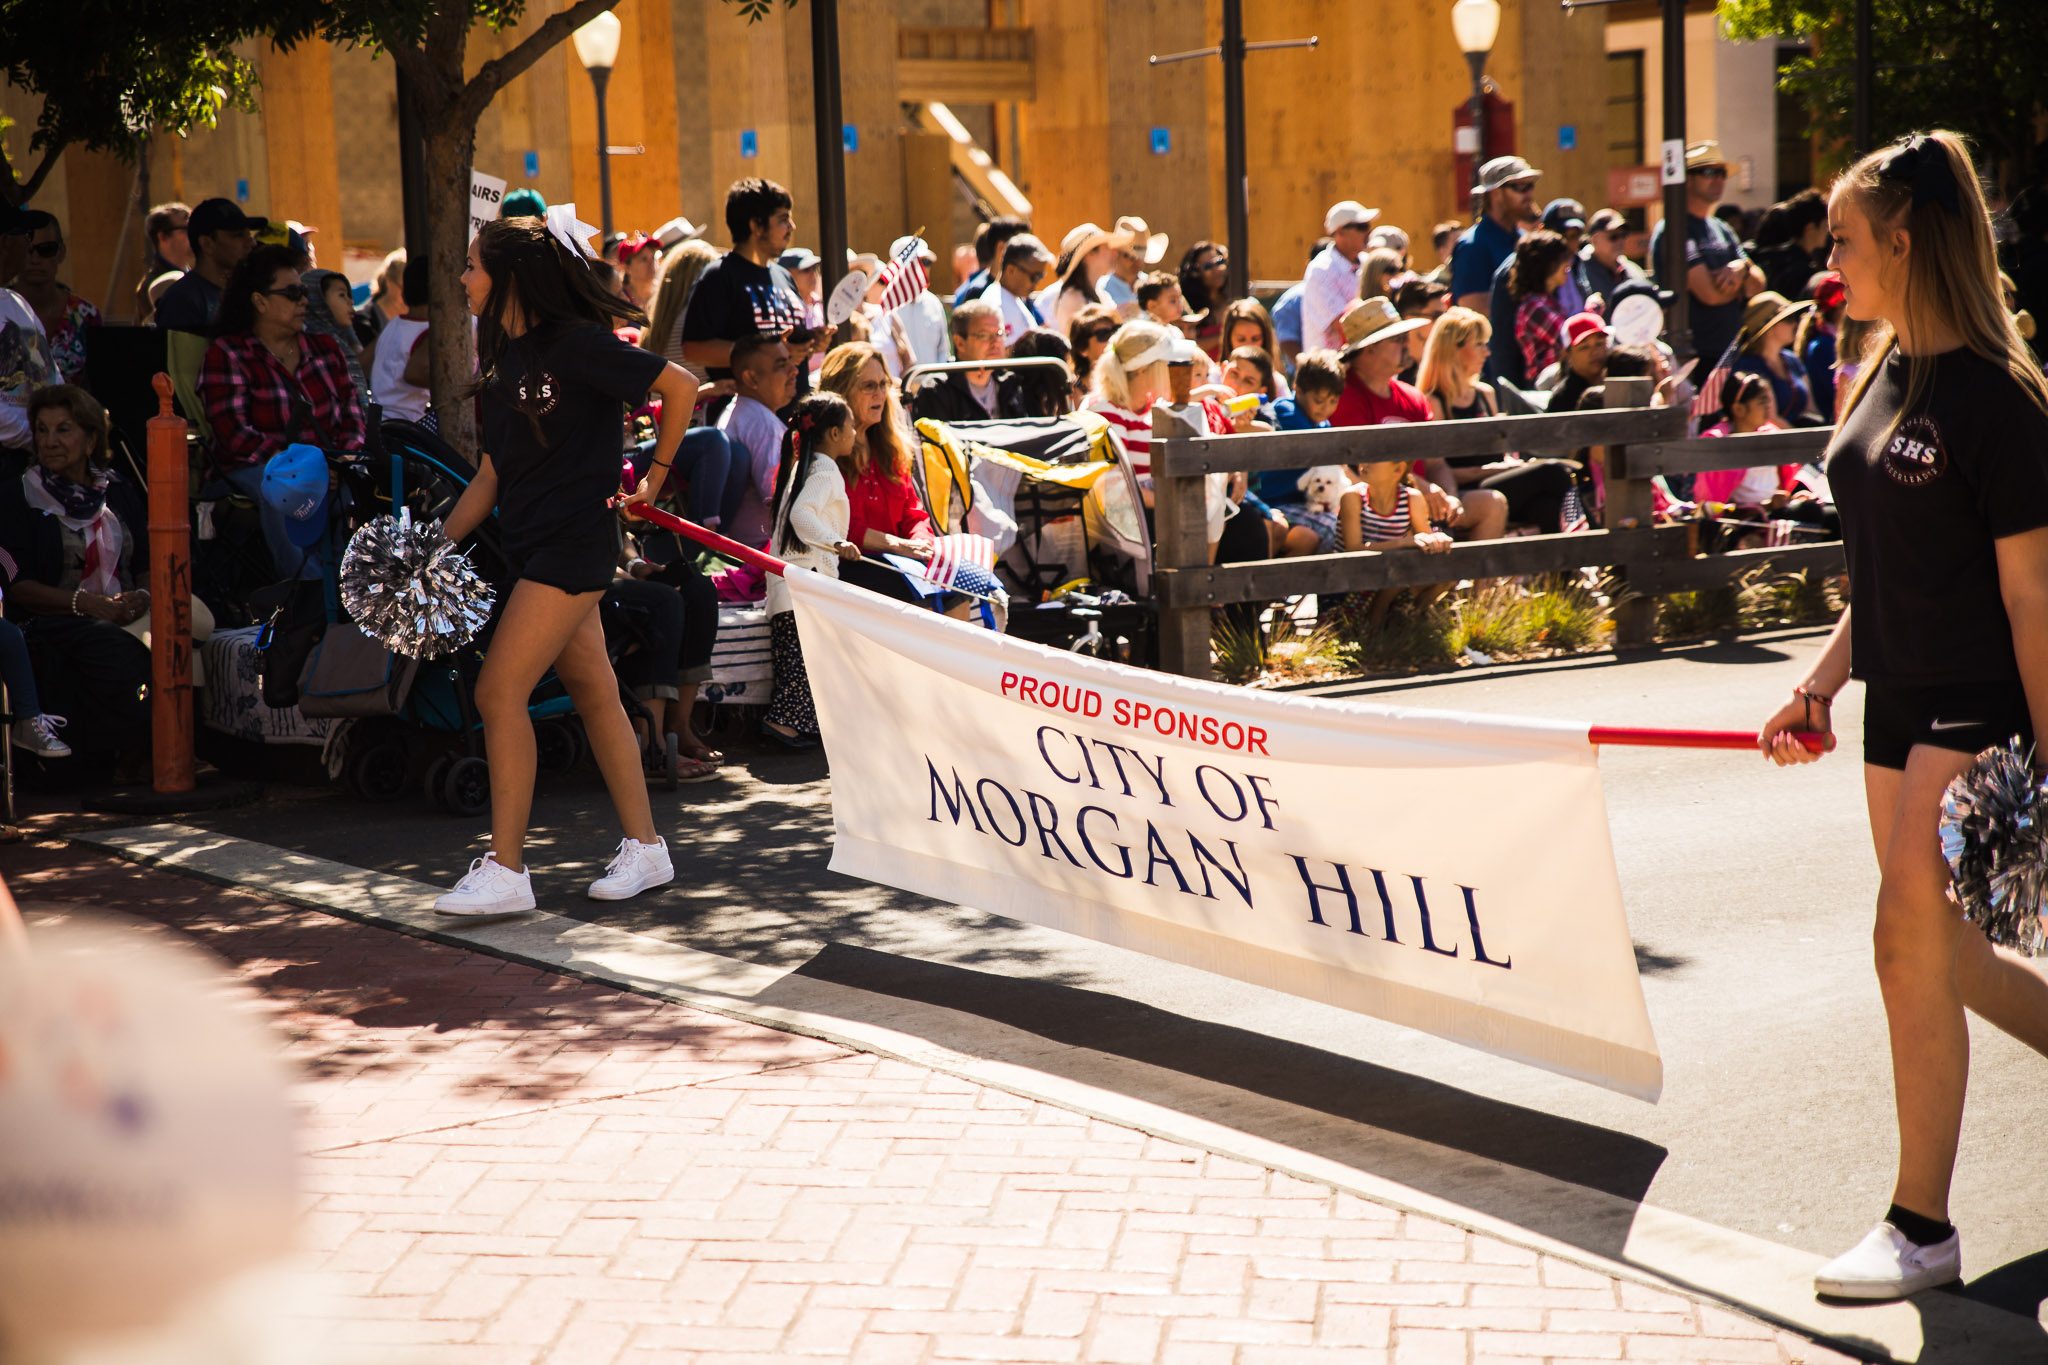 Archer_Inspired_Photography_Morgan_Hill_California_4th_of_july_parade-84.jpg